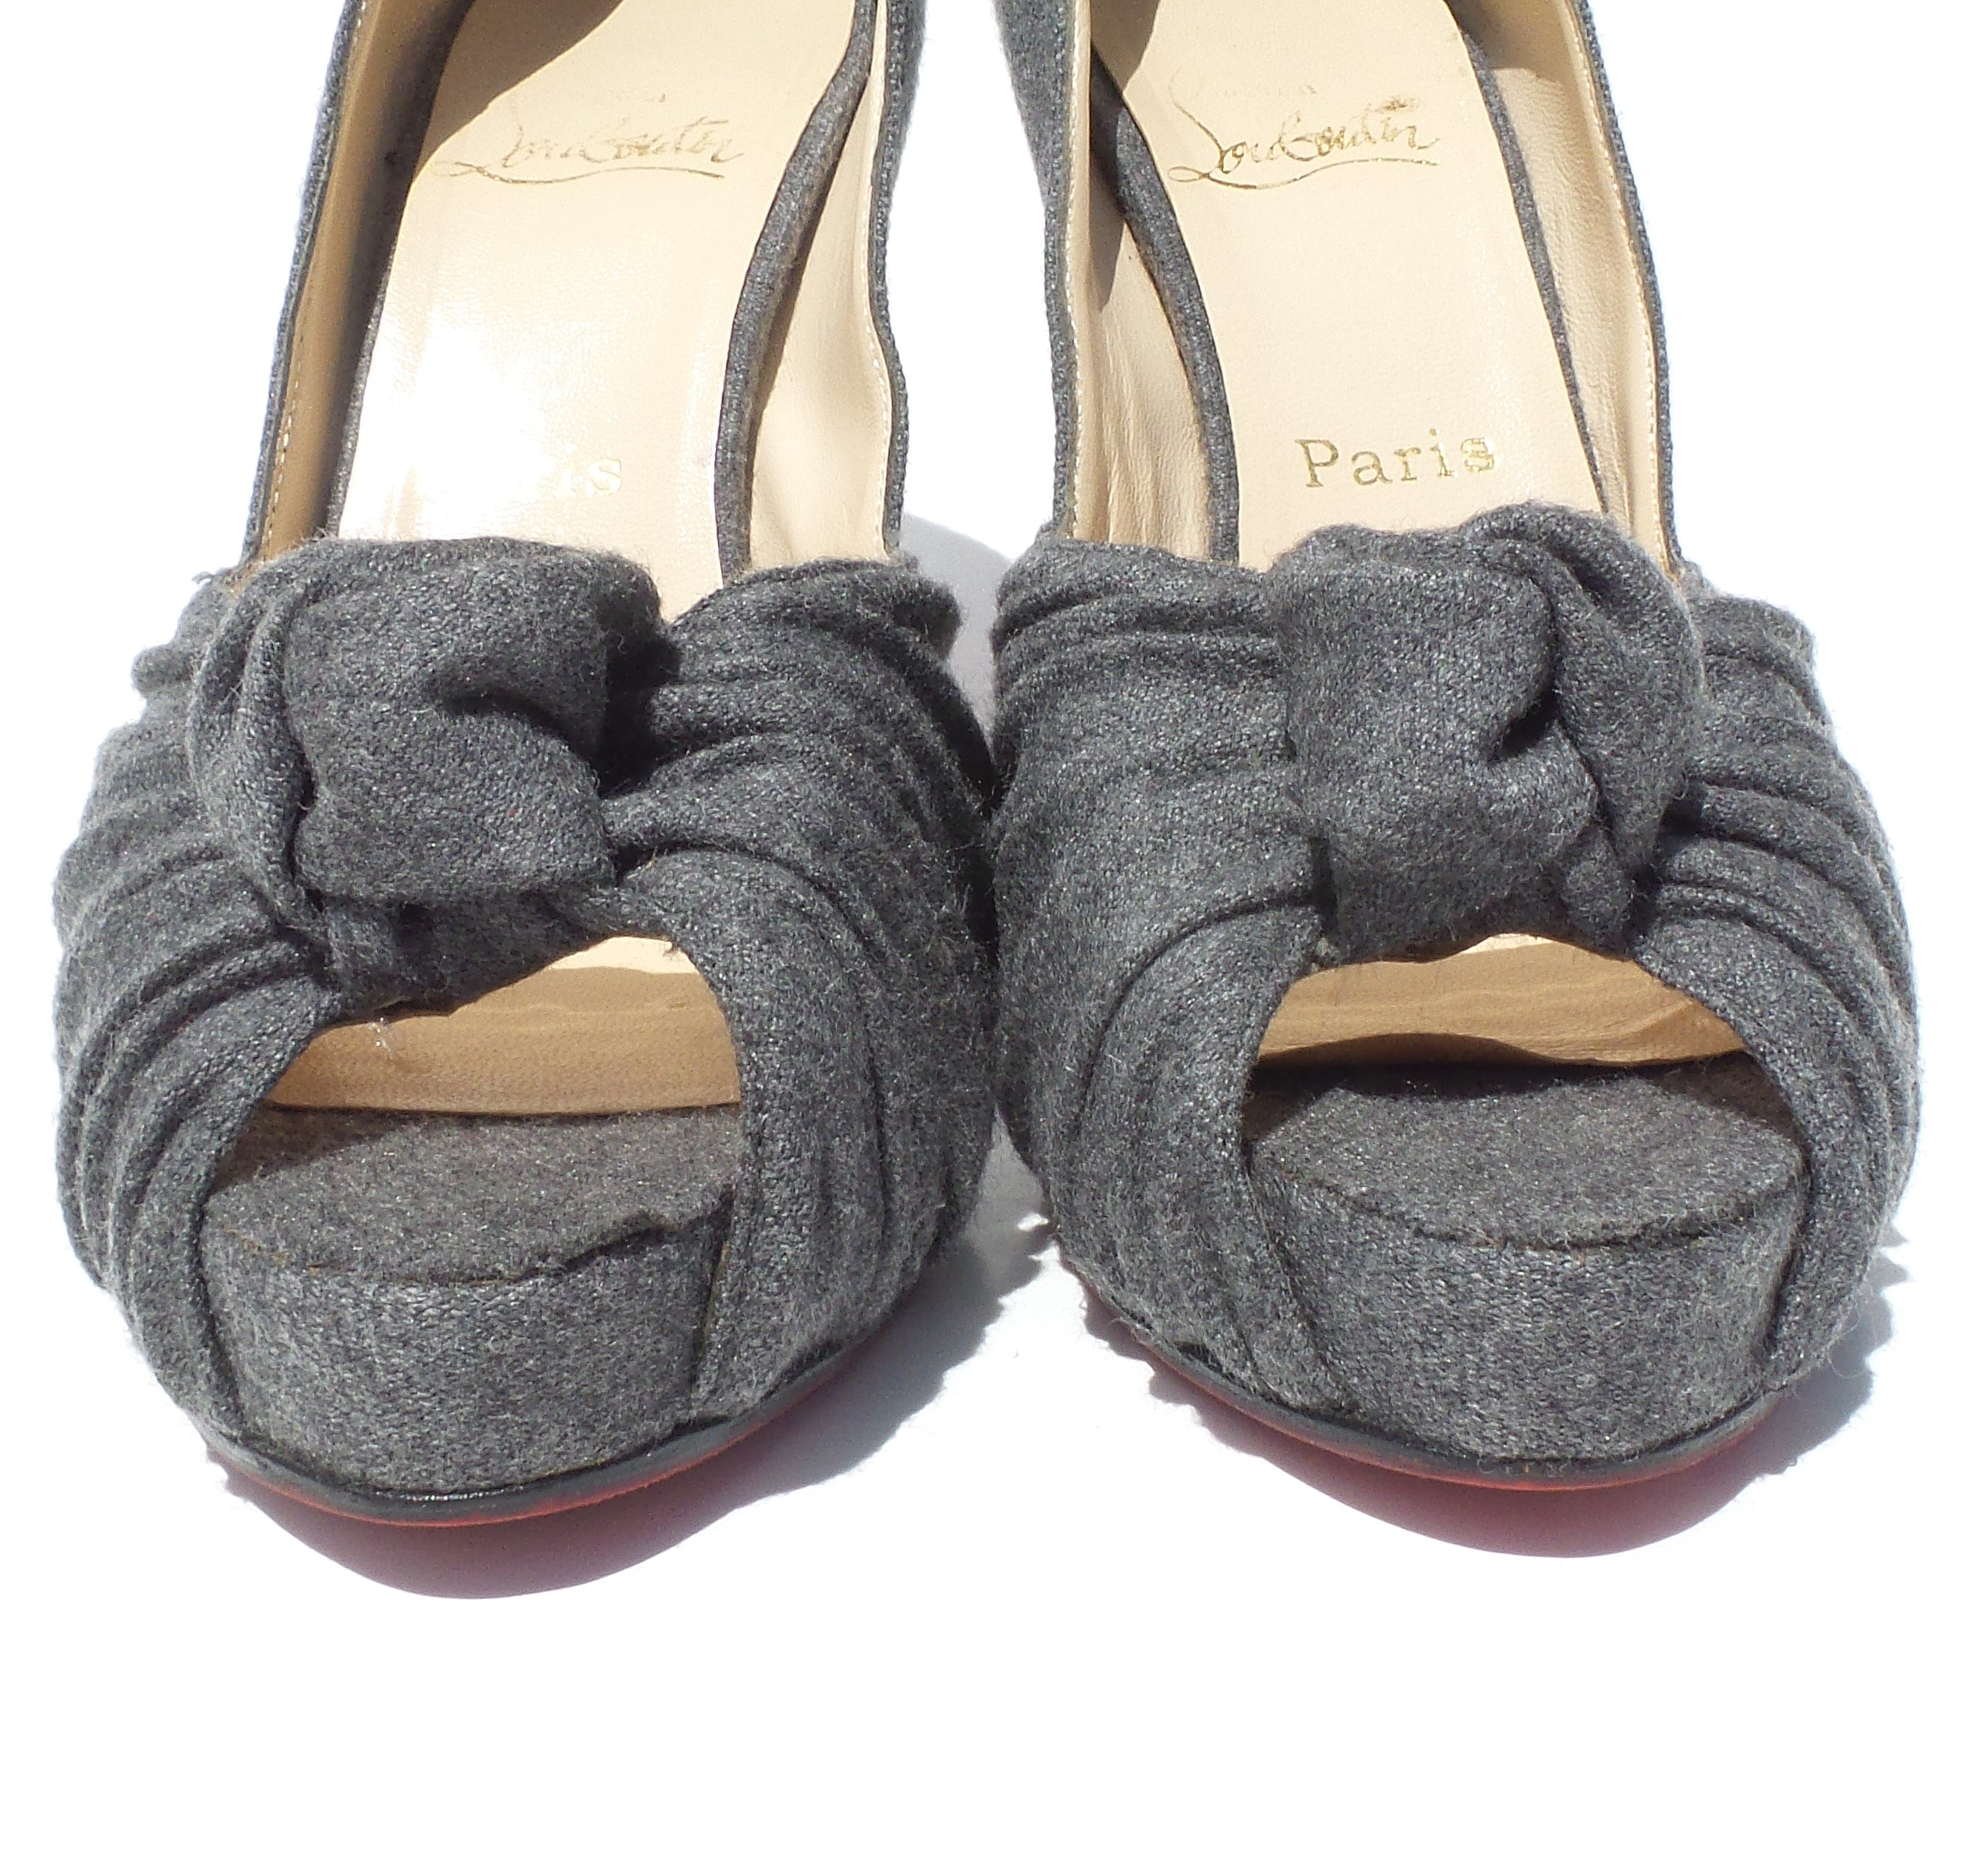 CHRISTIAN LOUBOUTIN Gray Flannel Lady Gres Twist Knot Peep Toe Platform Pumps 39